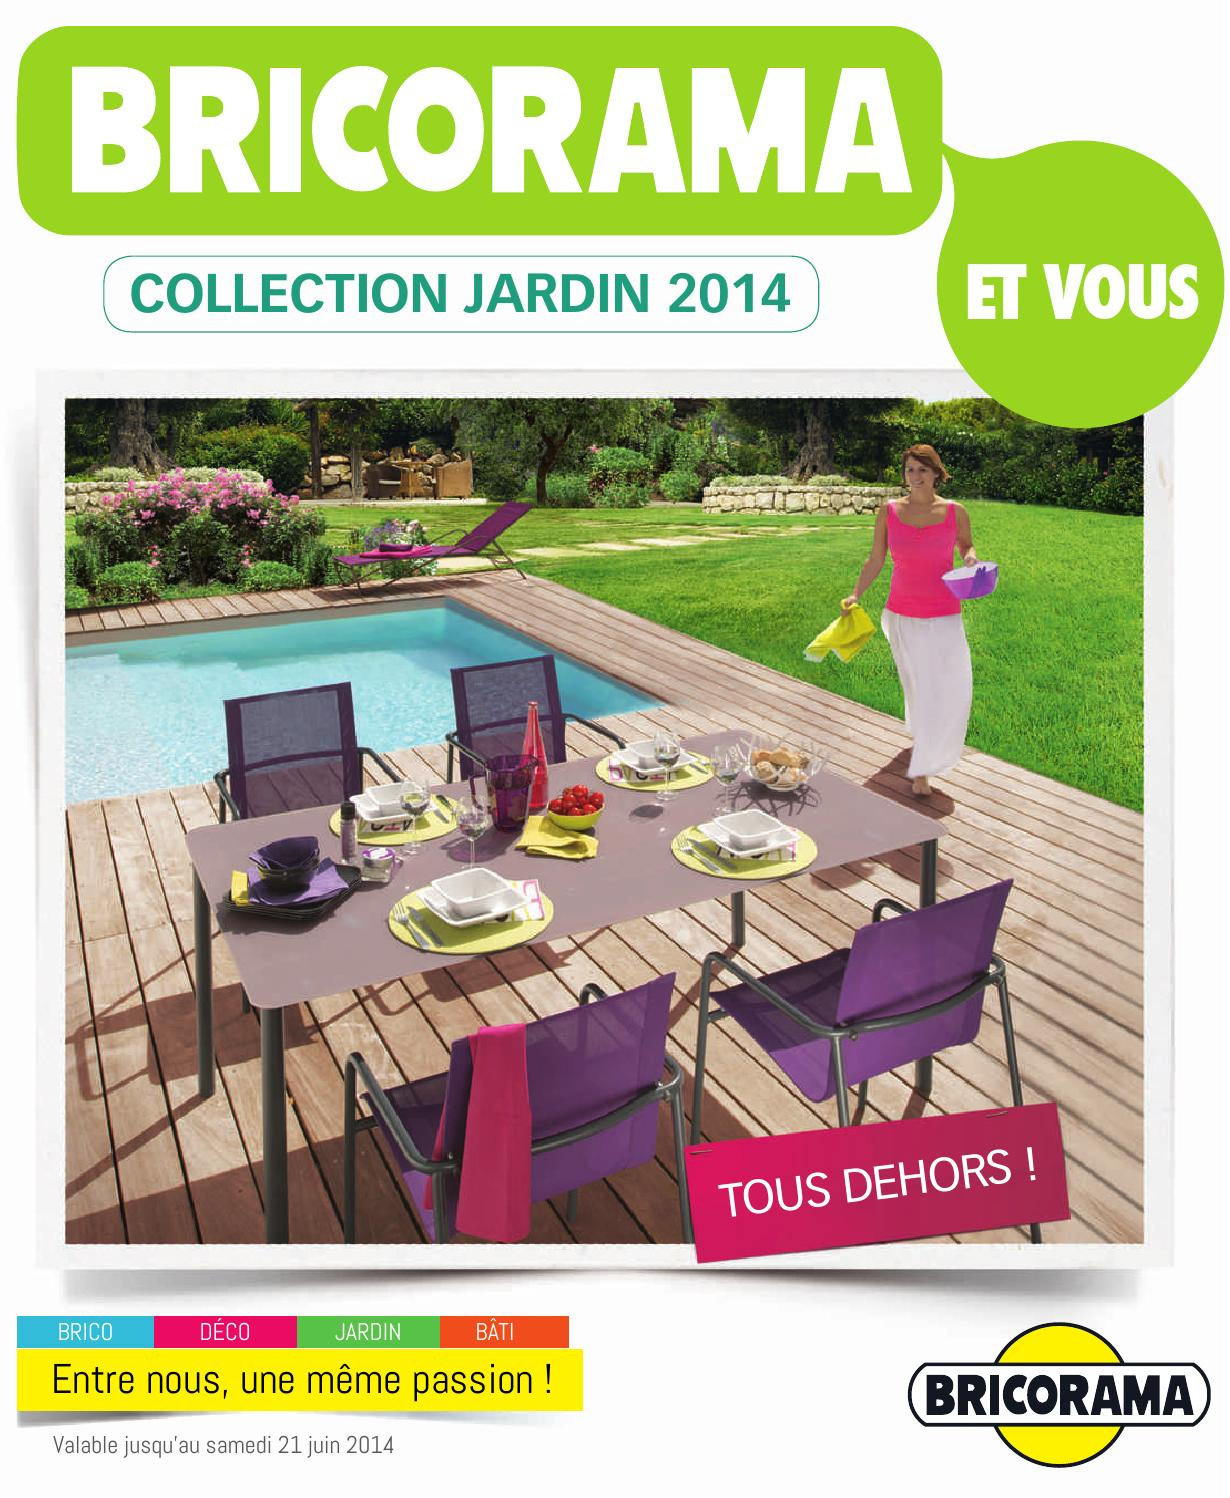 Catalogue Bricorama - Jardin 2014 by joe monroe - issuu